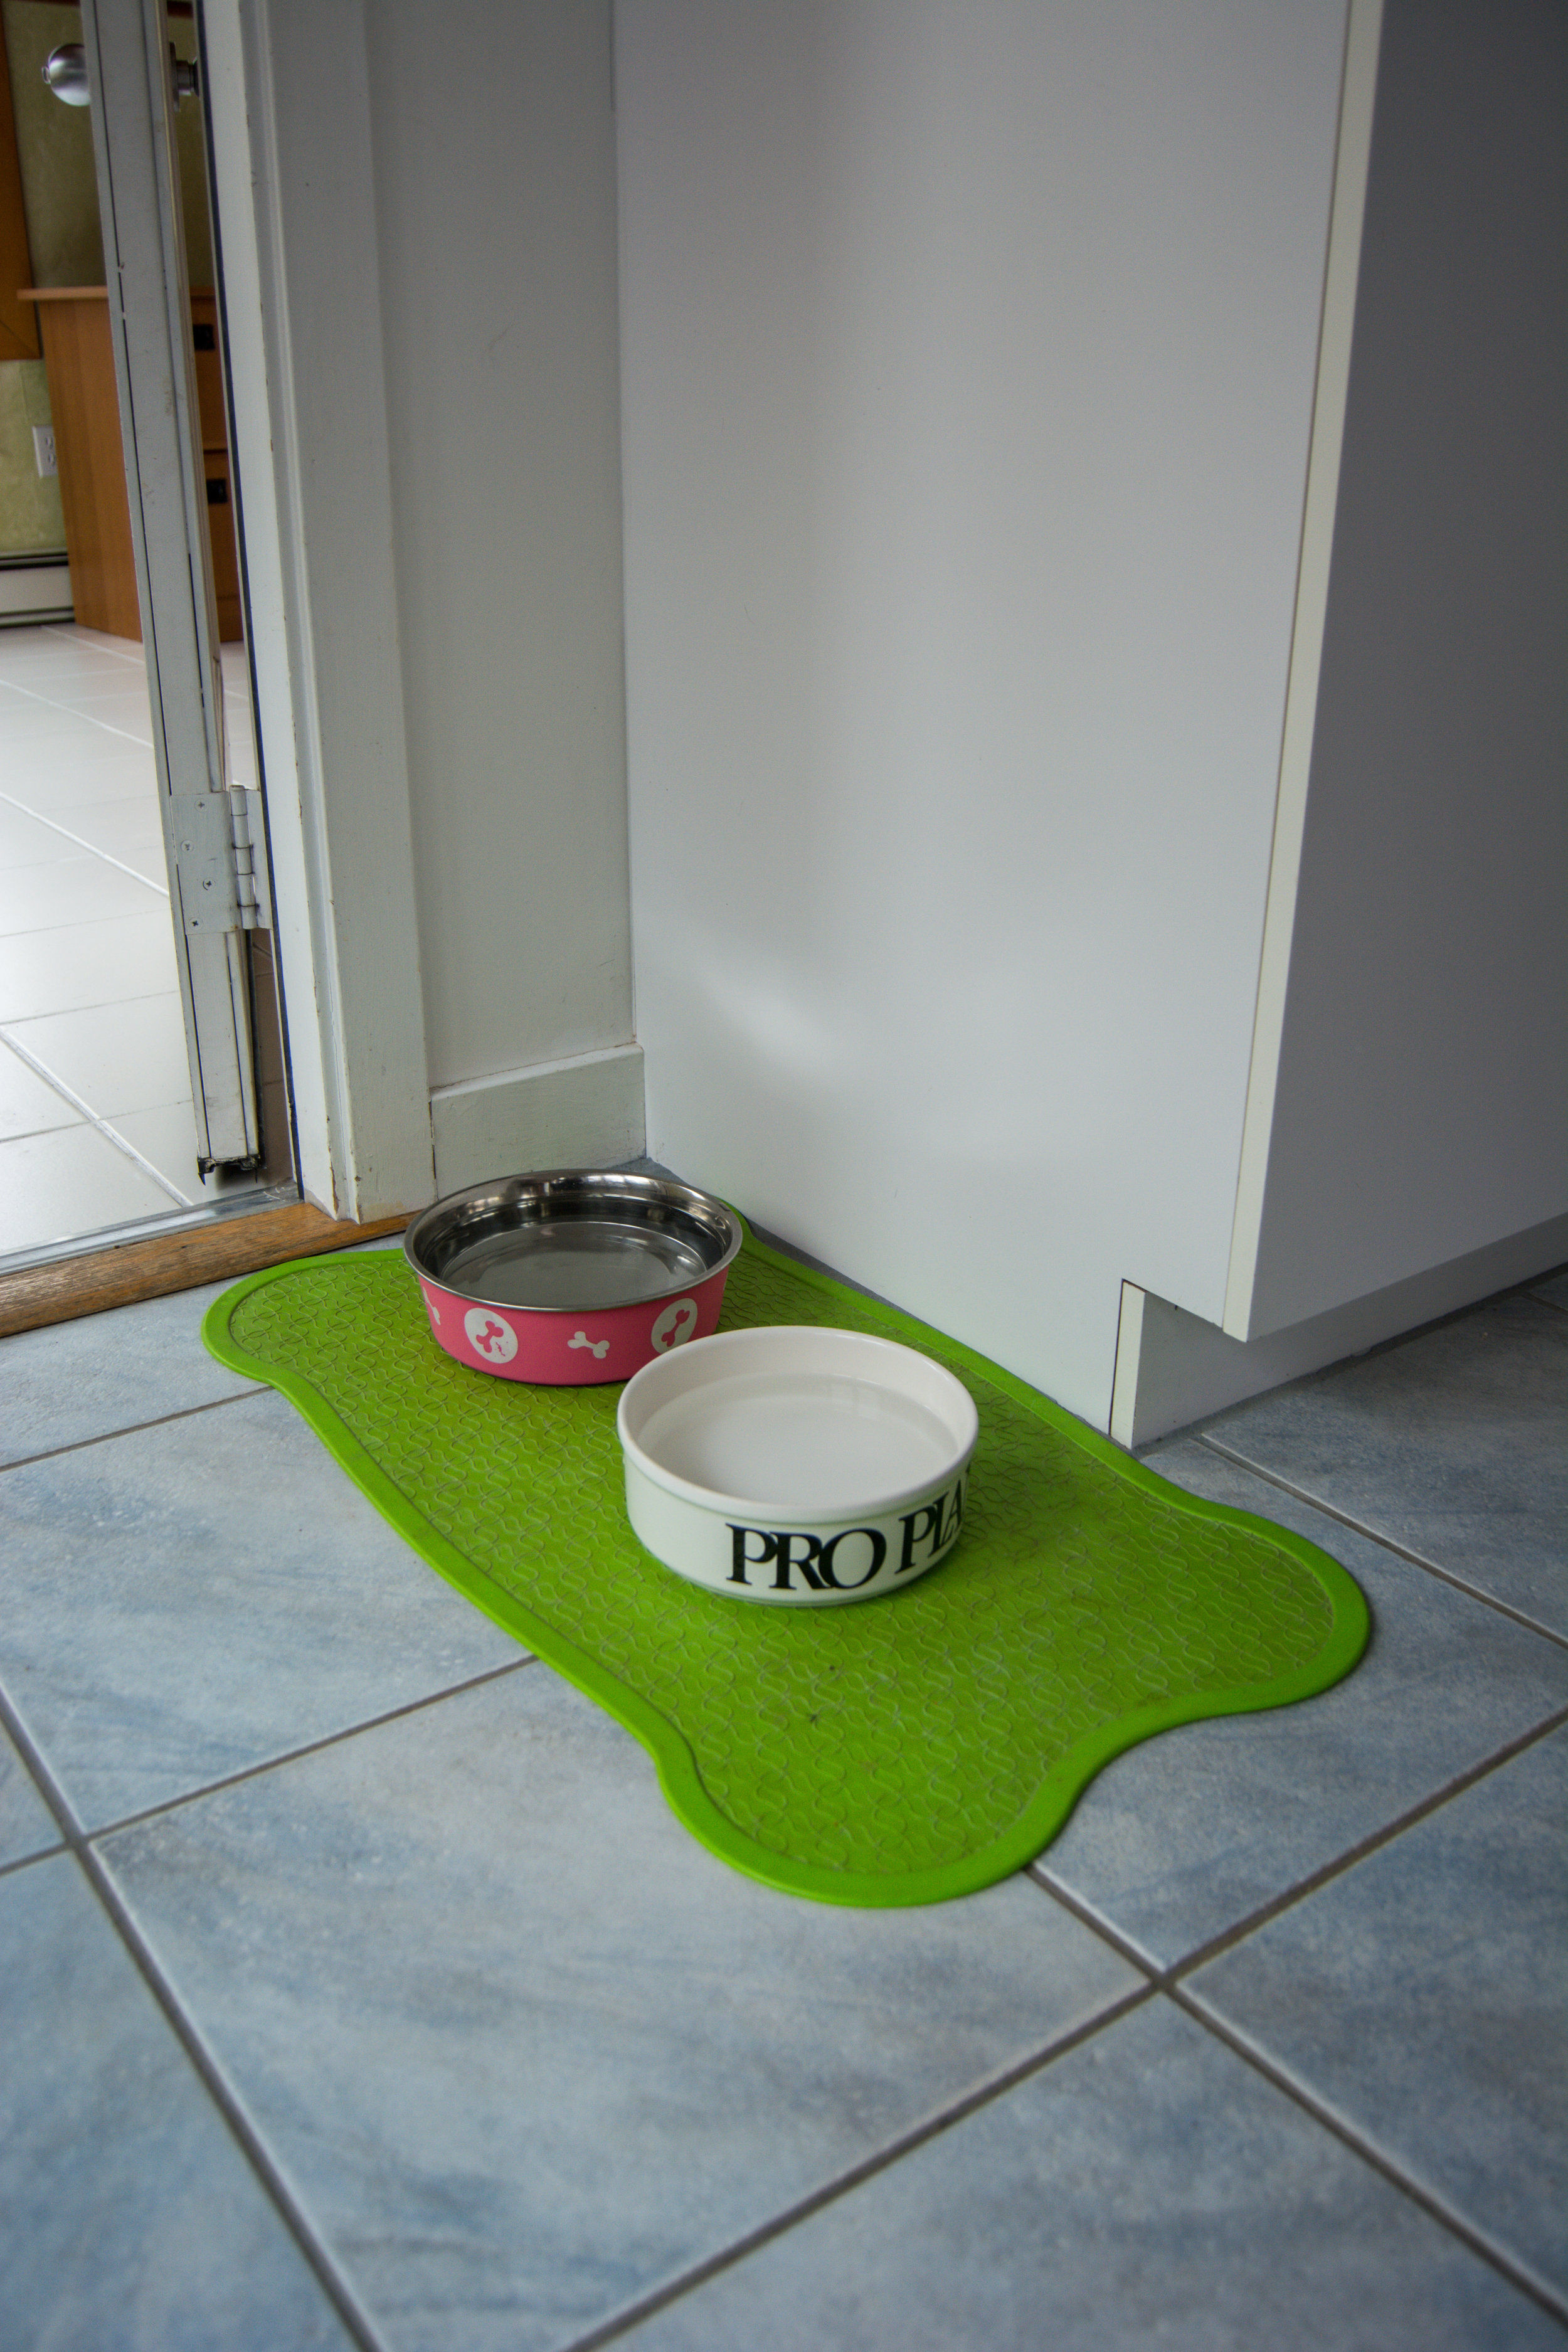 Each dog has their own feed bowl and water bowls are located around the home and outside